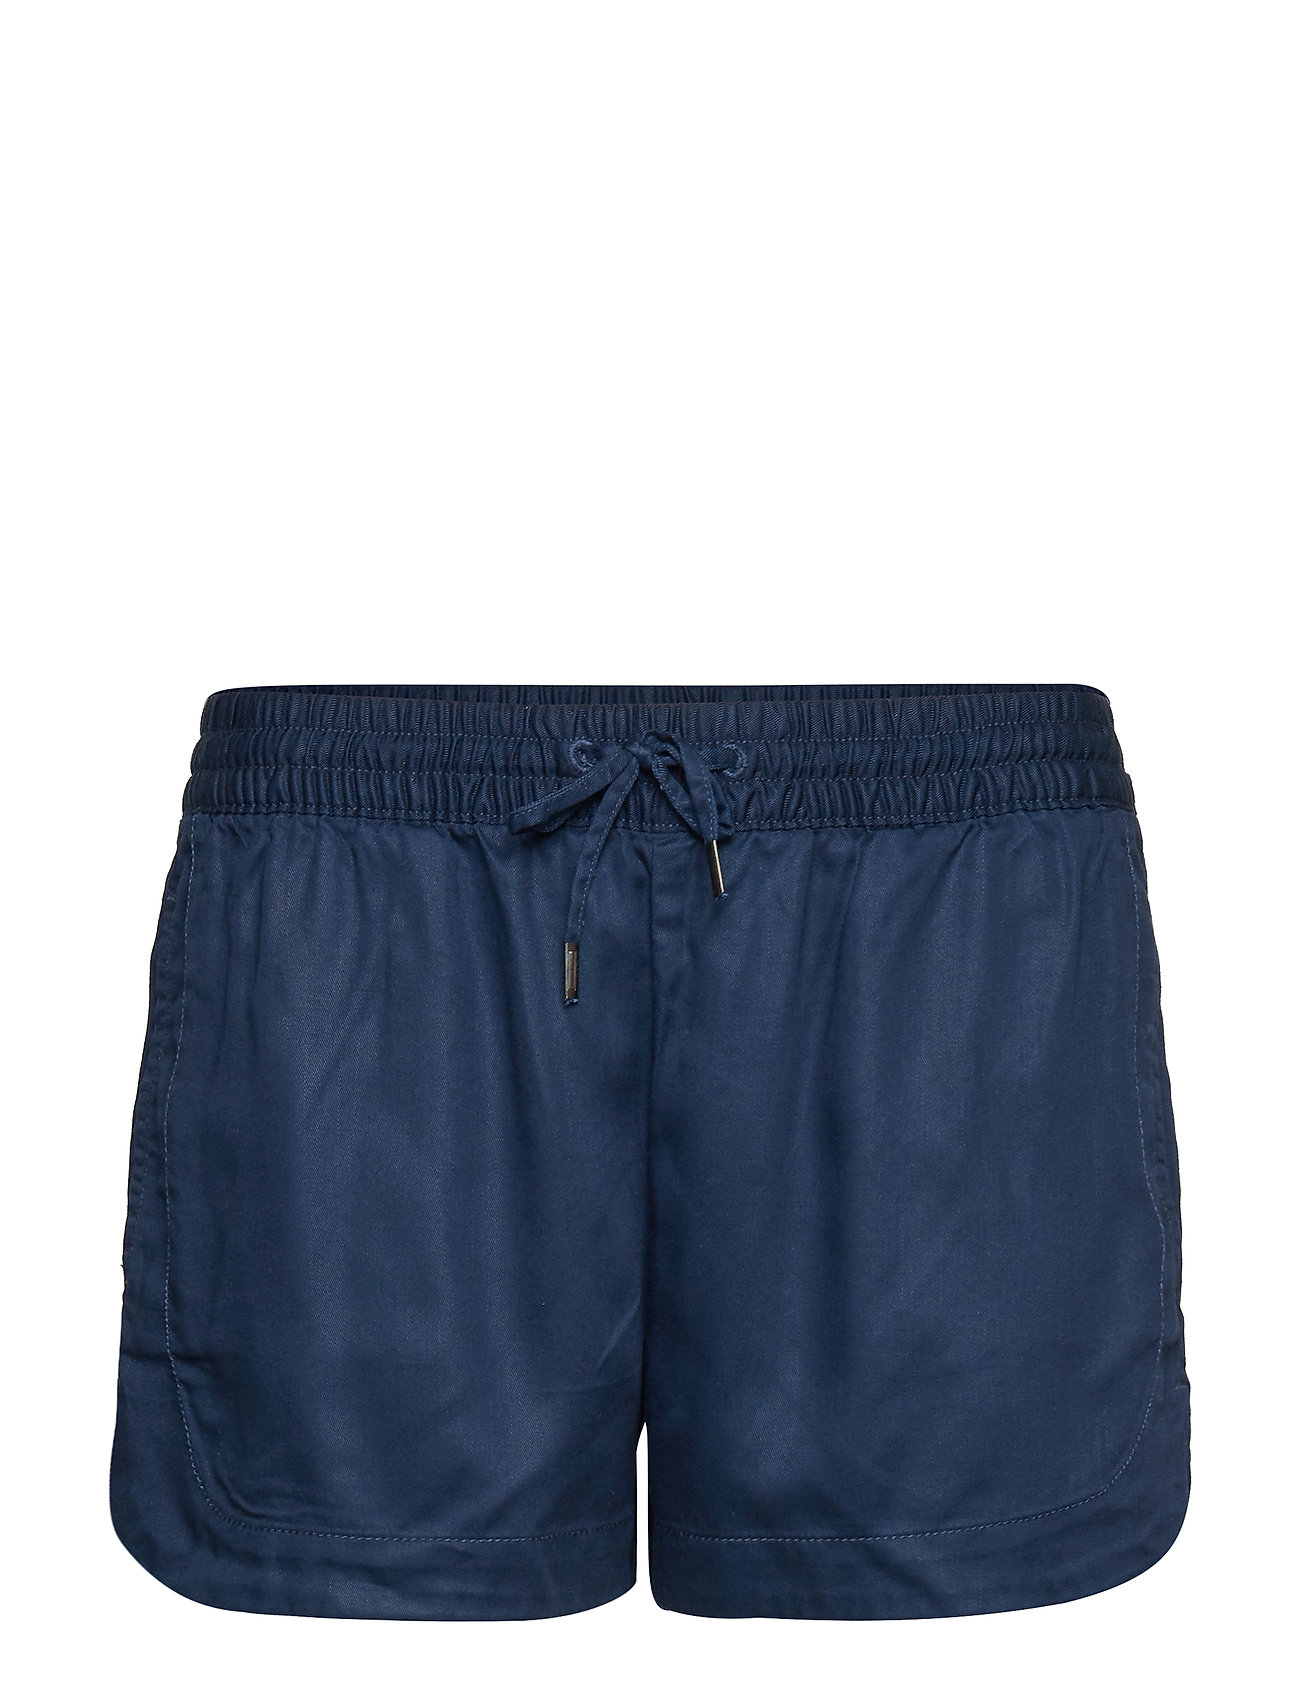 Tommy Jeans TJW CASUAL SOLID SHORT - BLACK IRIS